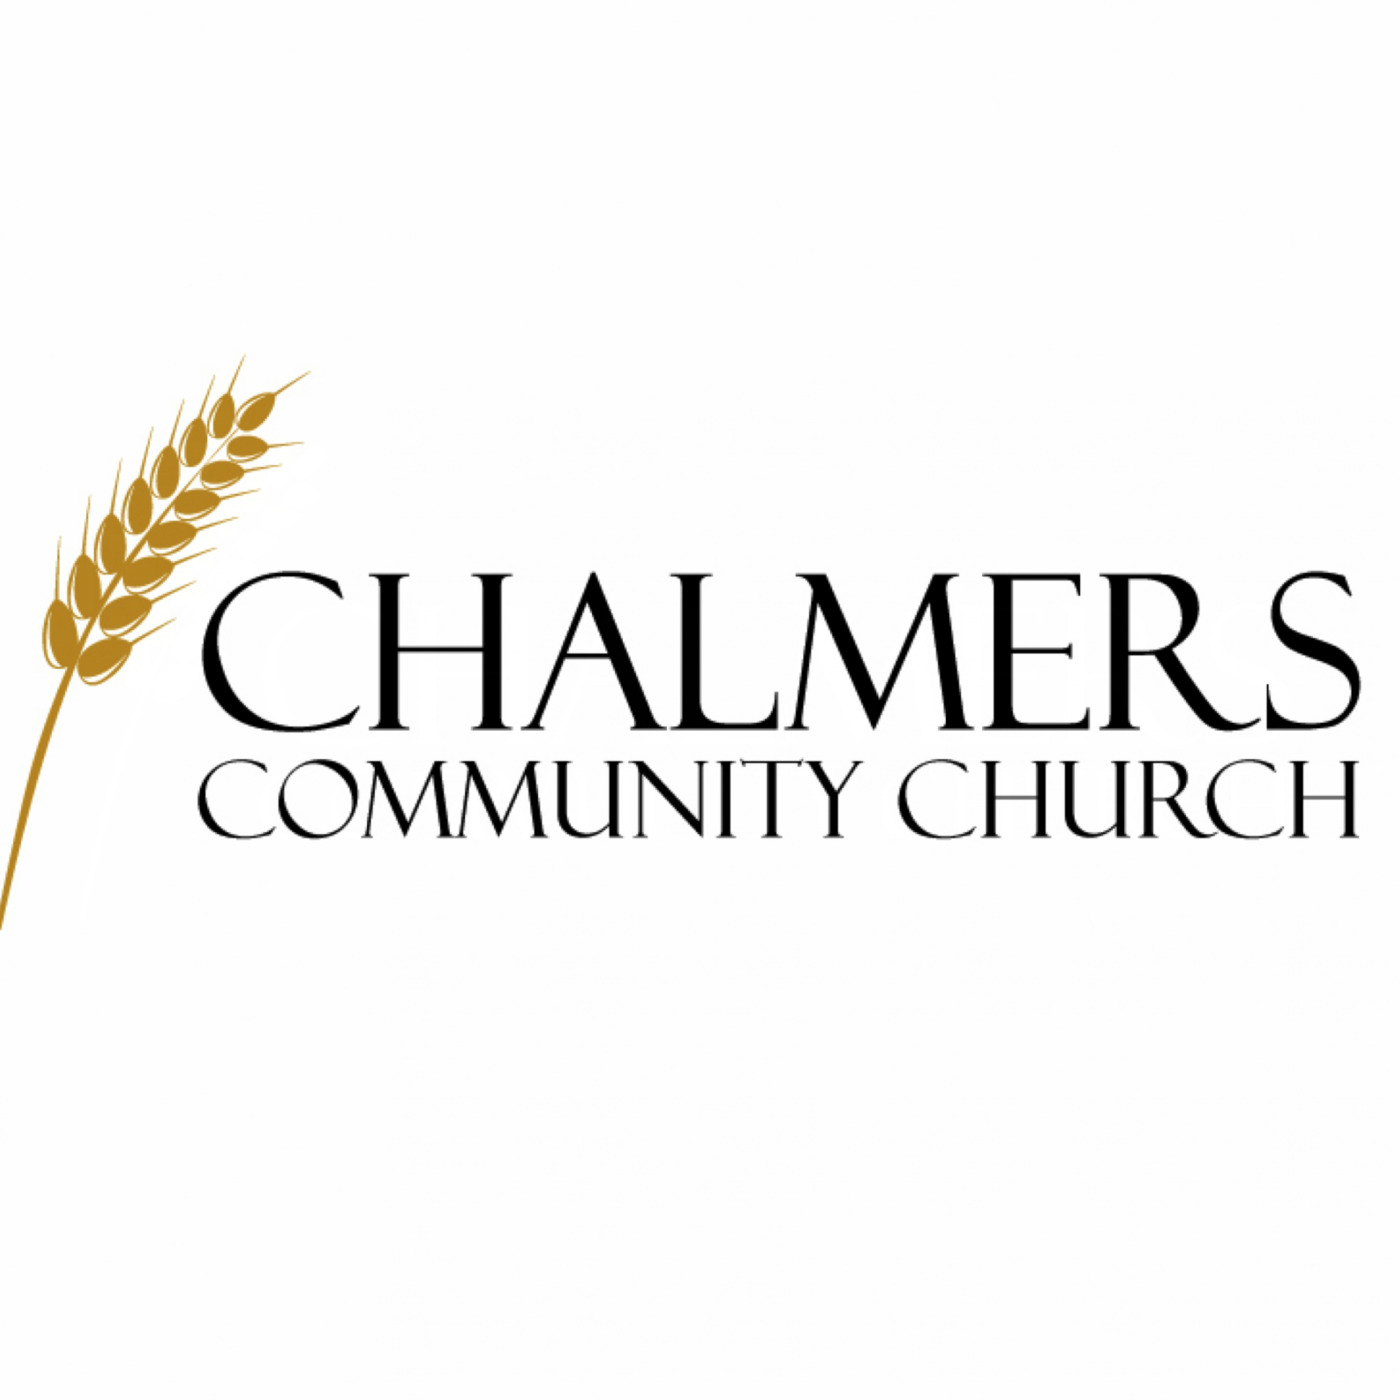 Chalmers Community Church